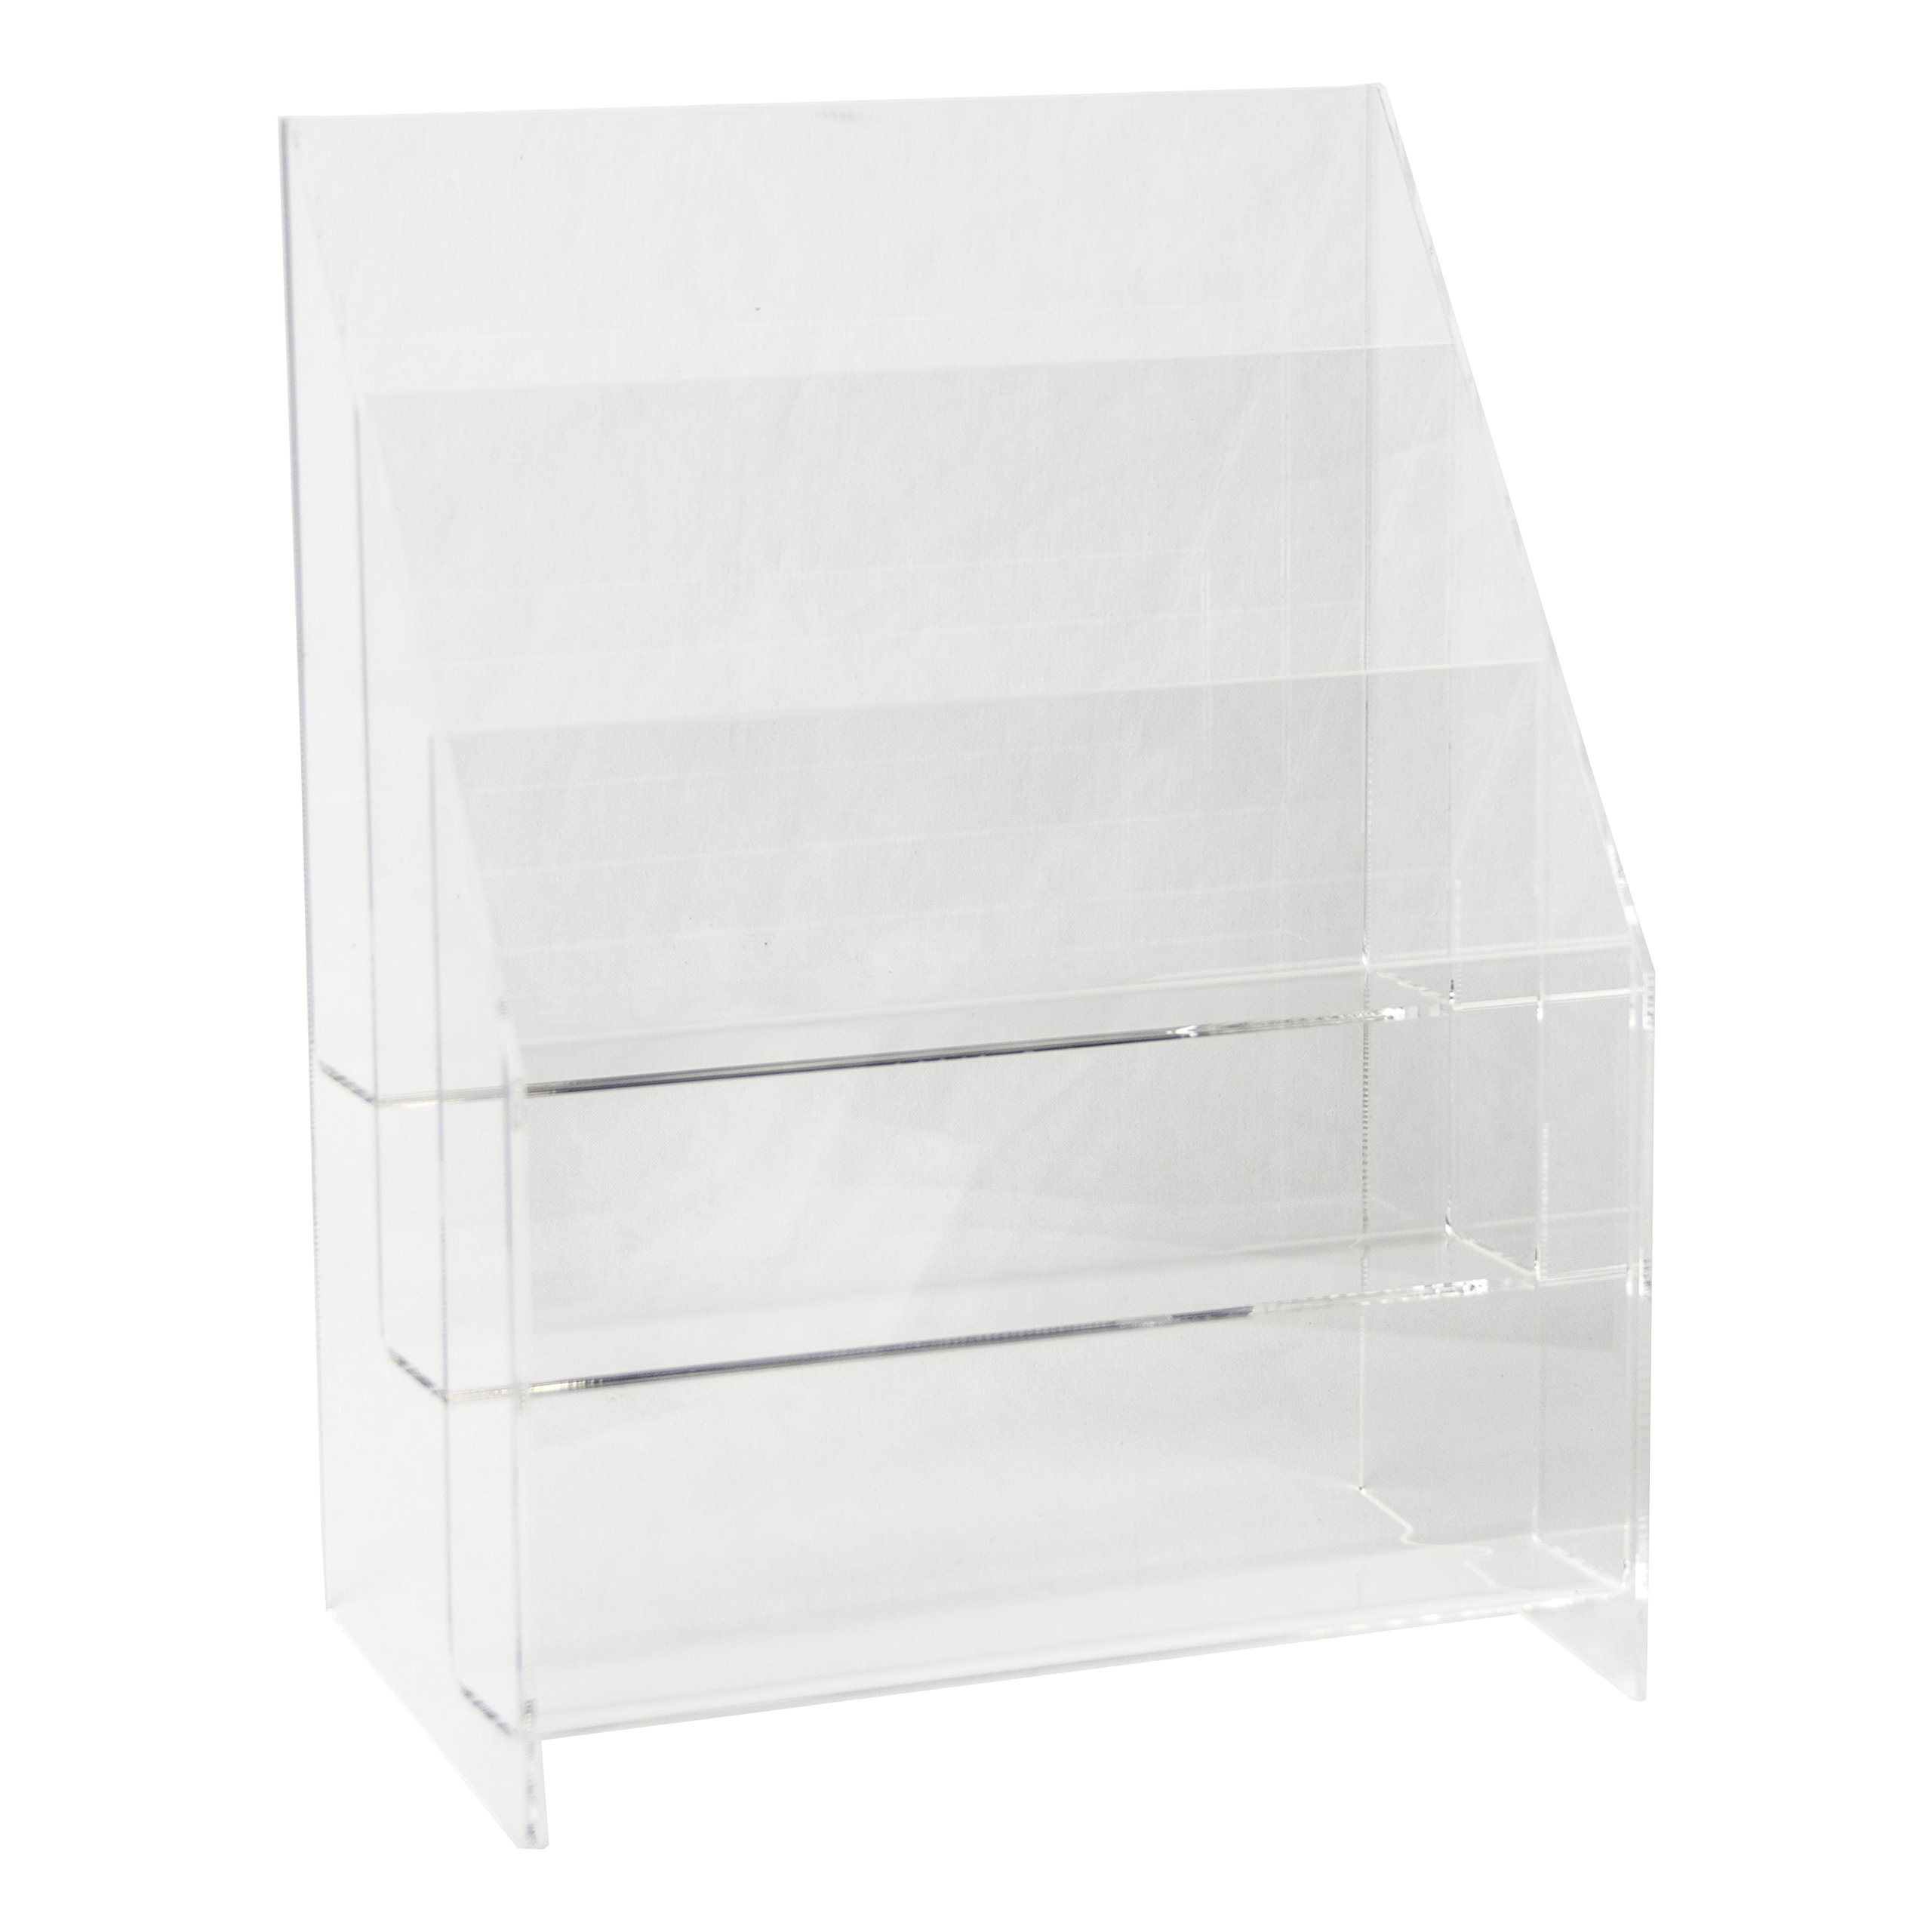 Clear-Ad - MPF-8511-3 - Premium Acrylic 3 Pocket Brochure Holder 8.5x11 - Transparent Plastic Pamphlet Display Stand (Pack of 1)